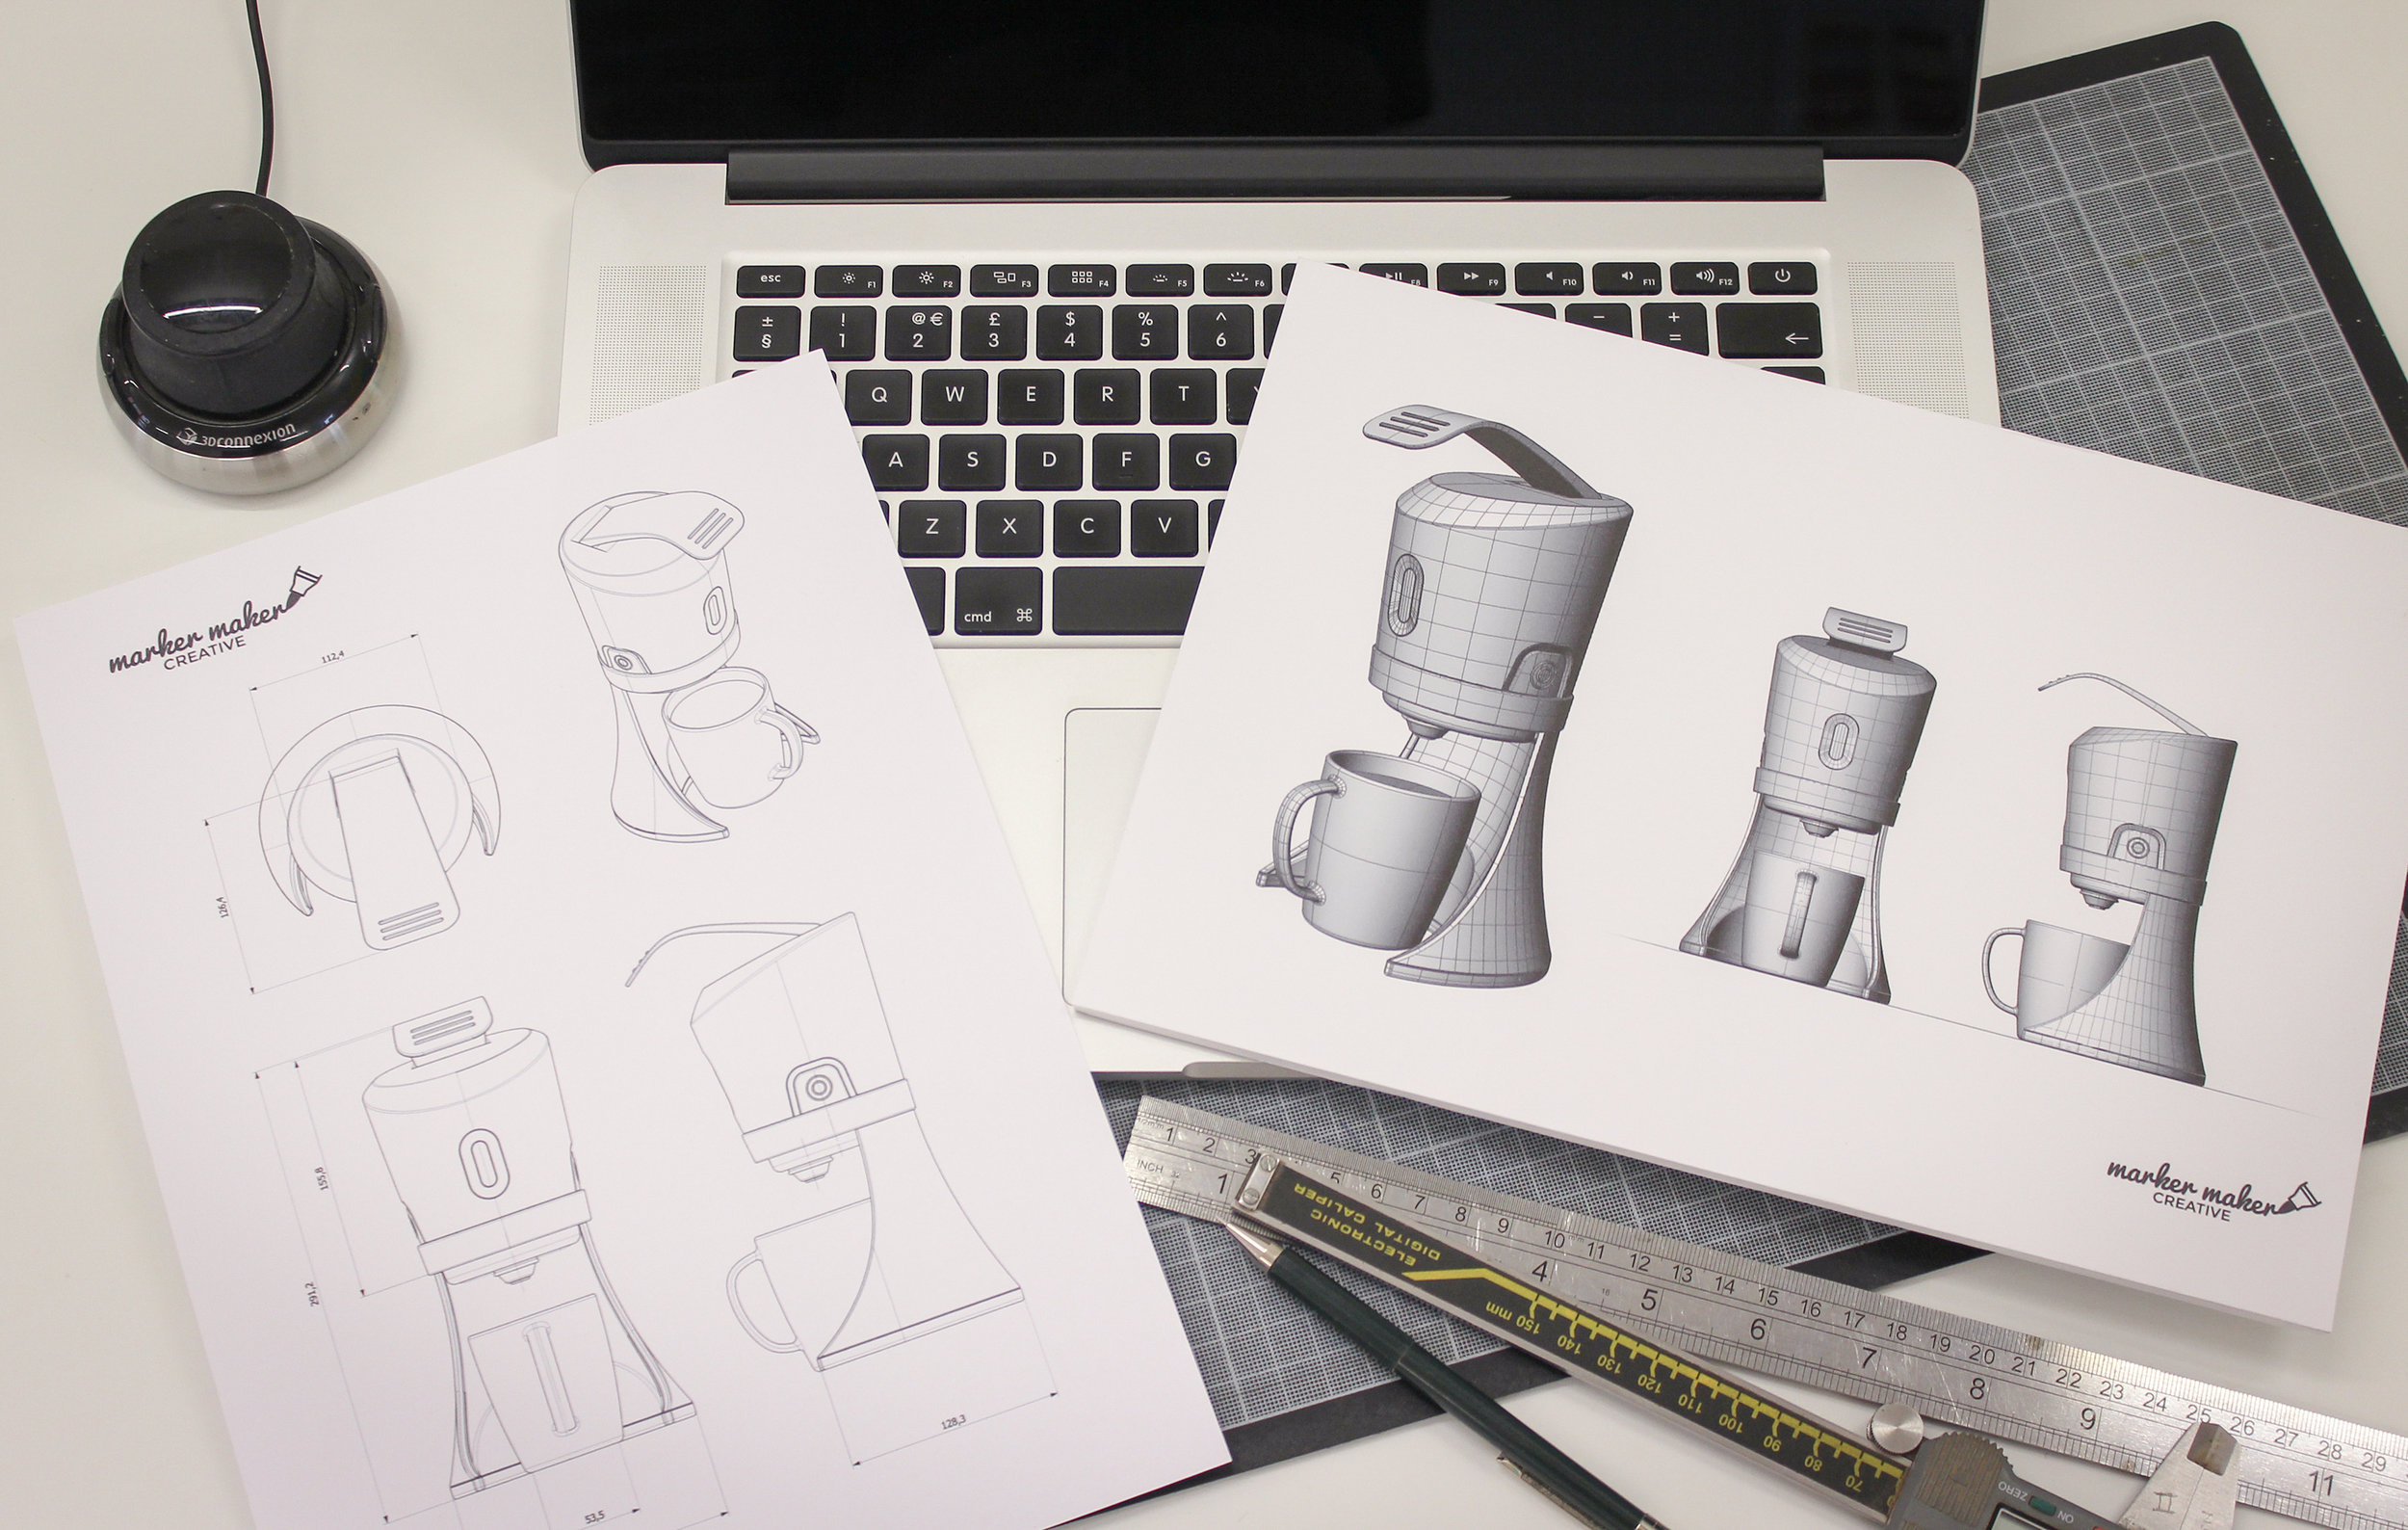 We are able to translate 2D ideas into a 3D realisation, utilising computer aided design software. This technology allows us to easily resolve ideas, build complex assemblies and interrogate form. It is an important tool when developing accurate idea representations, where scale and proportion impact the success of a concept.